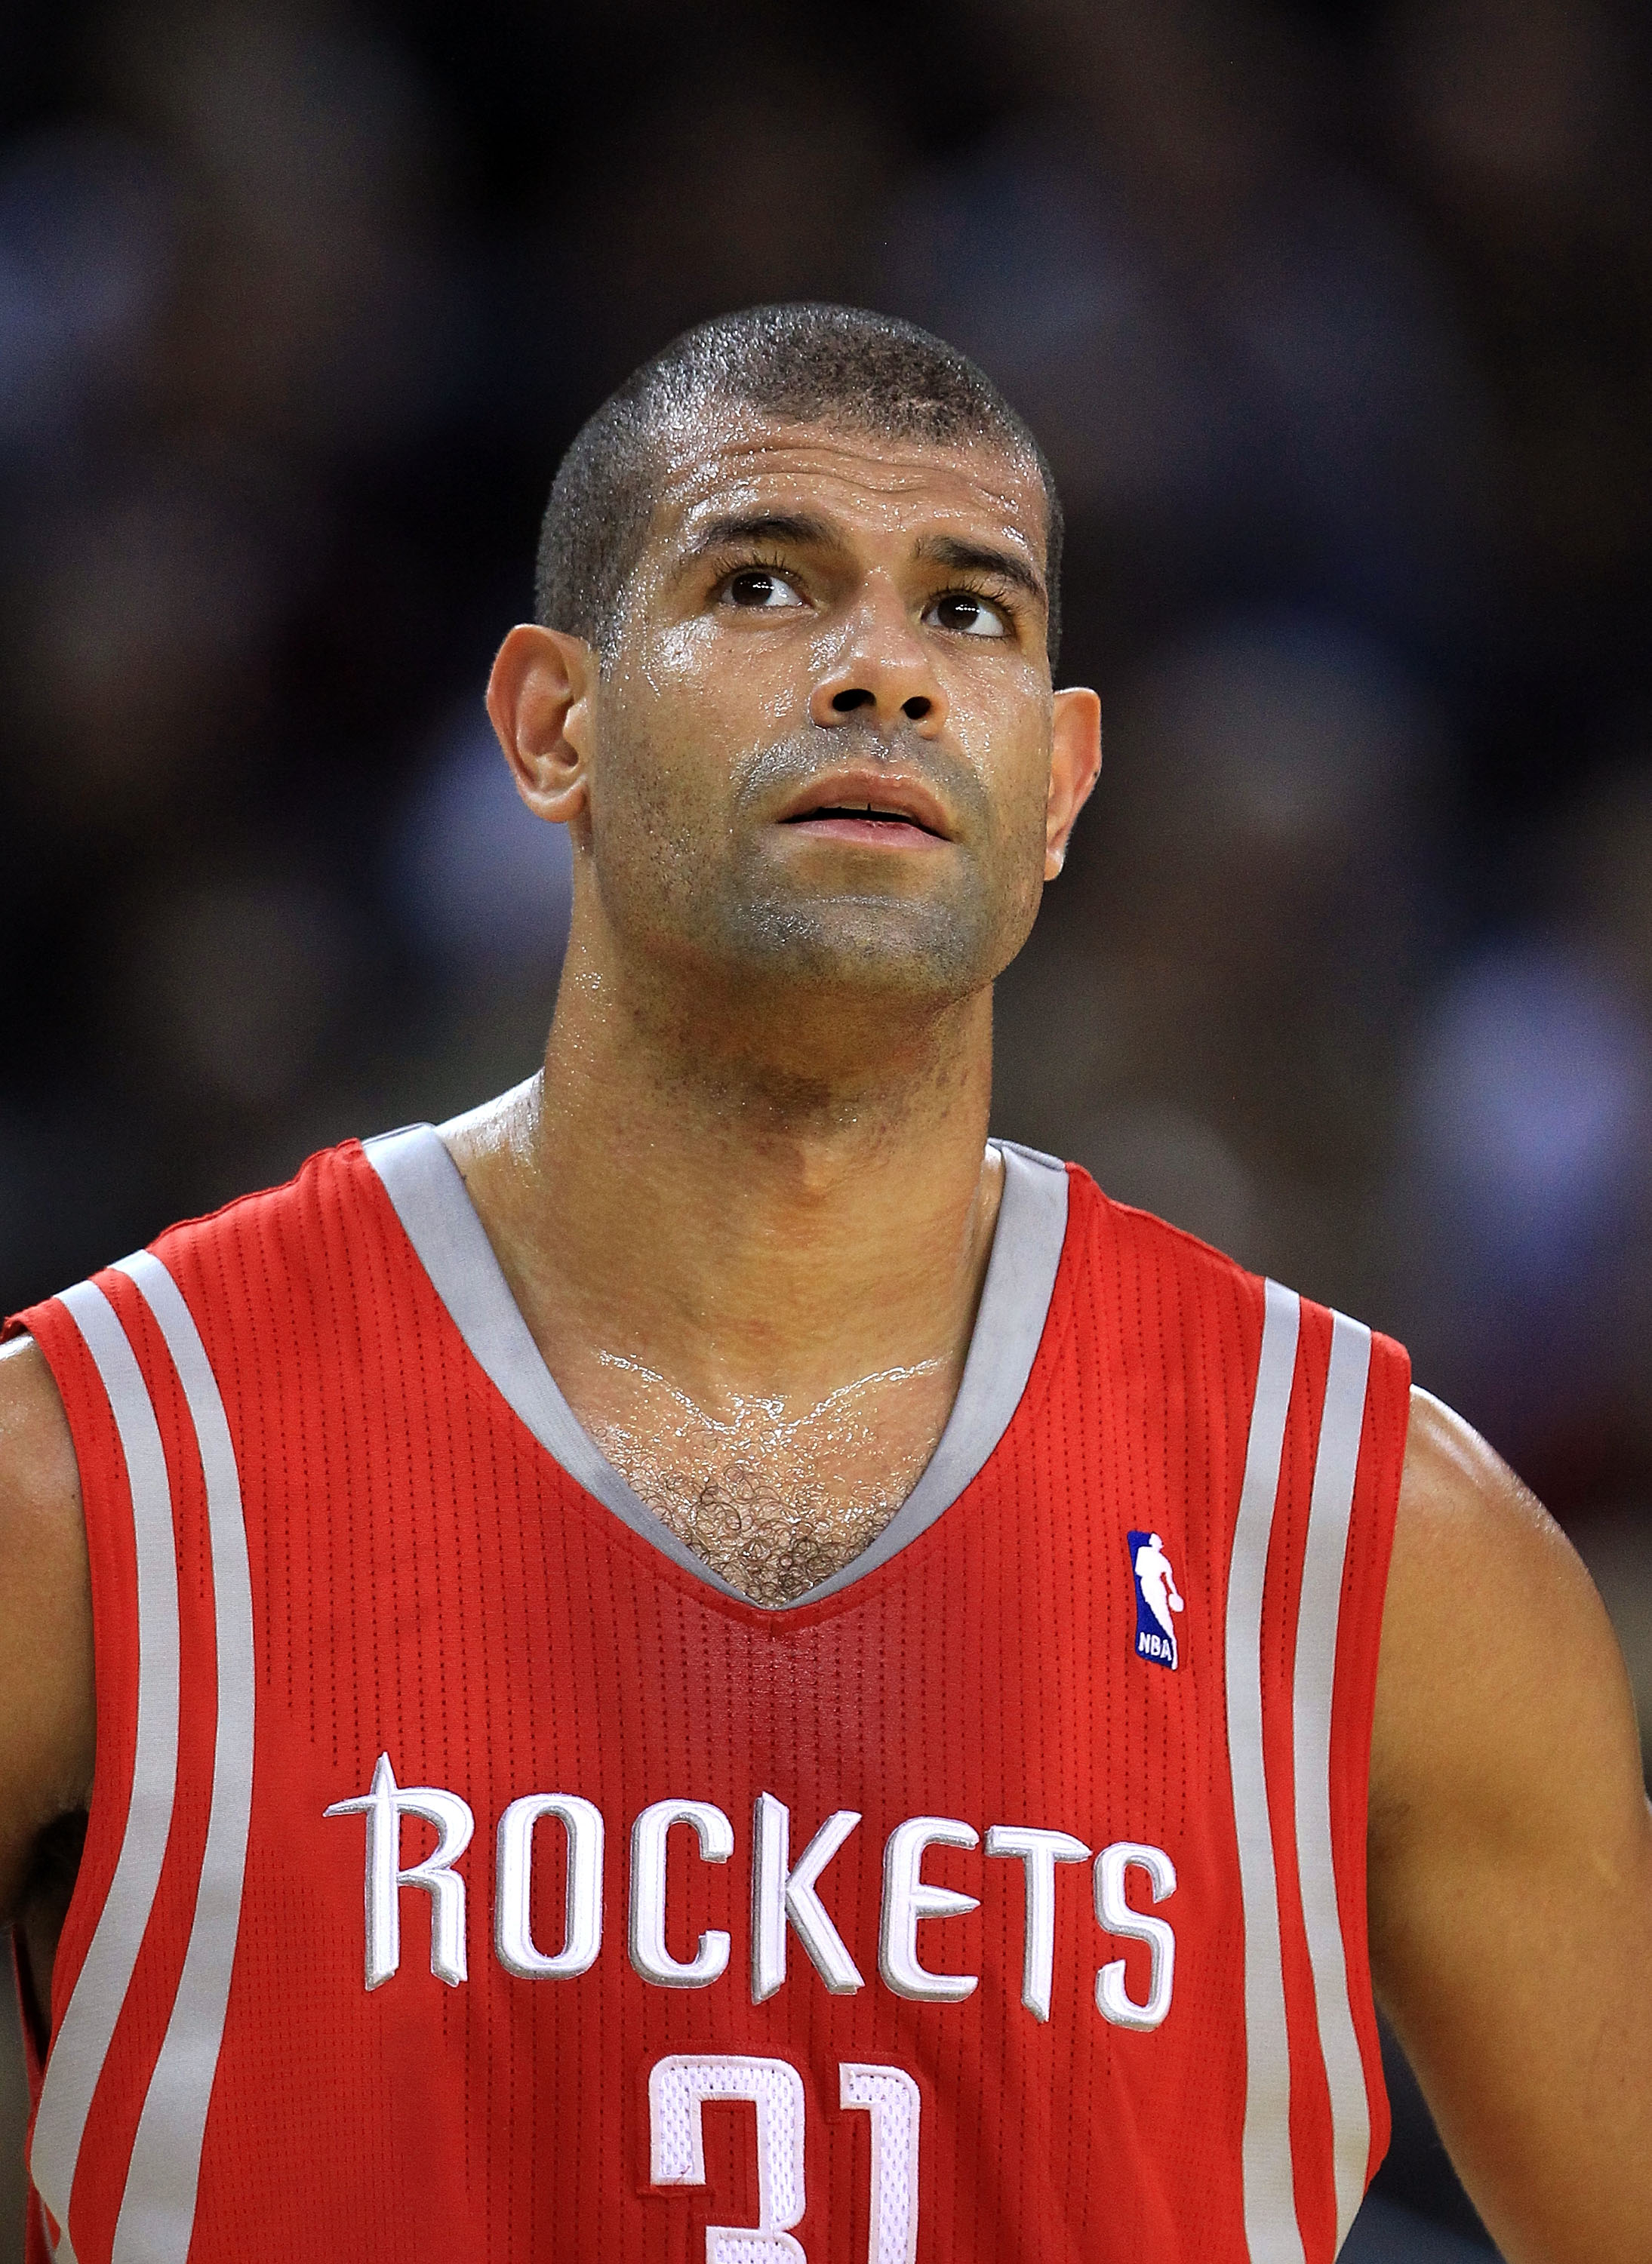 OAKLAND, CA - DECEMBER 20:  Shane Battier #31 of the Houston Rockets in action against the Golden State Warriors at Oracle Arena on December 20, 2010 in Oakland, California. NOTE TO USER: User expressly acknowledges and agrees that, by downloading and or